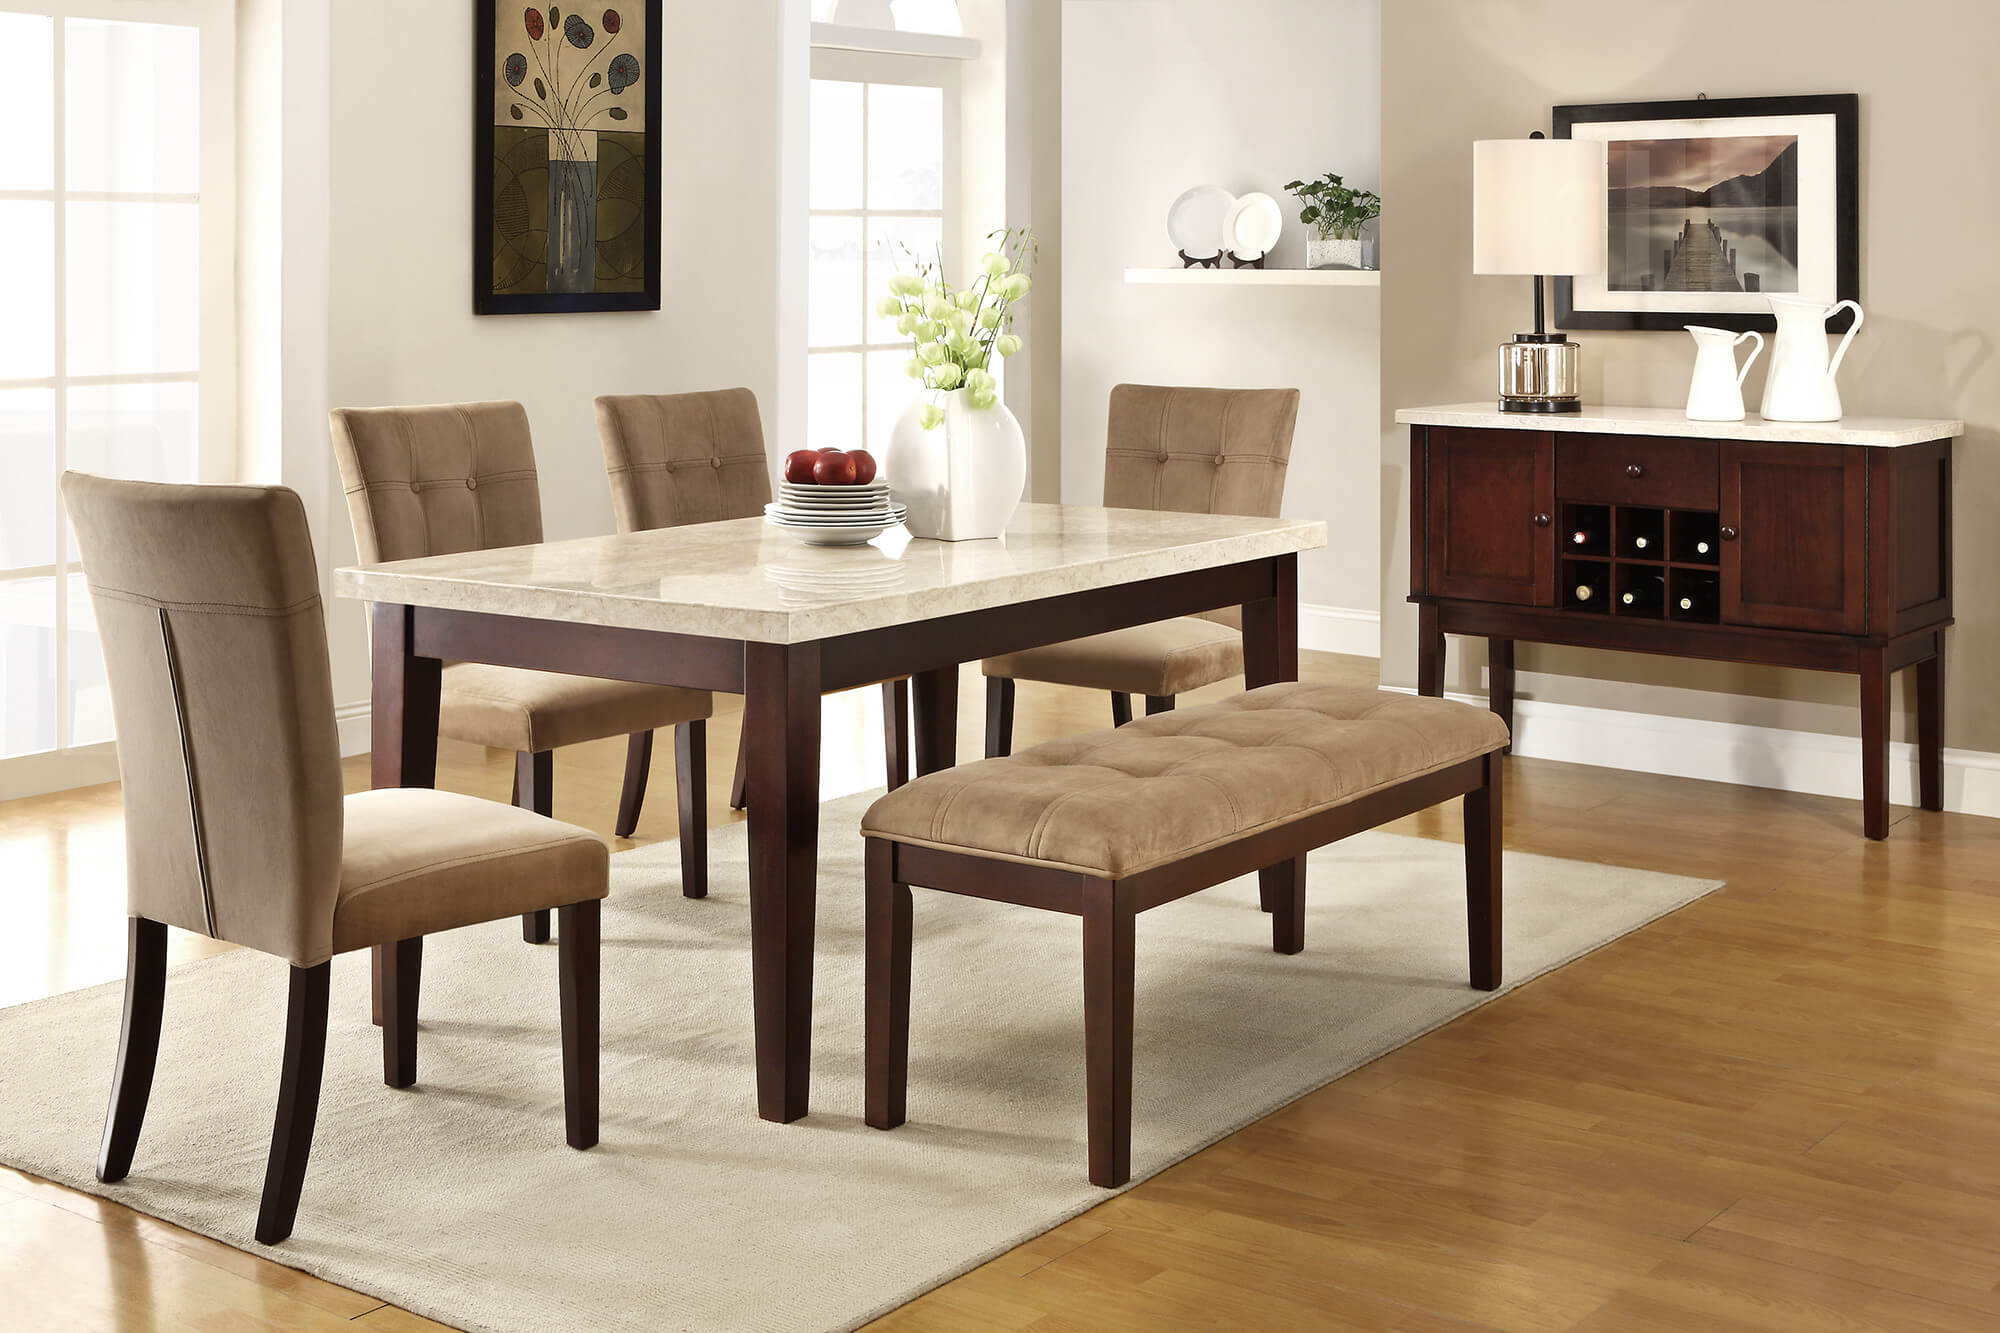 dining room sets bench seating kitchen table chairs Here s a 6 piece rubberwood dining set with faux marble table top with tan upholstery for